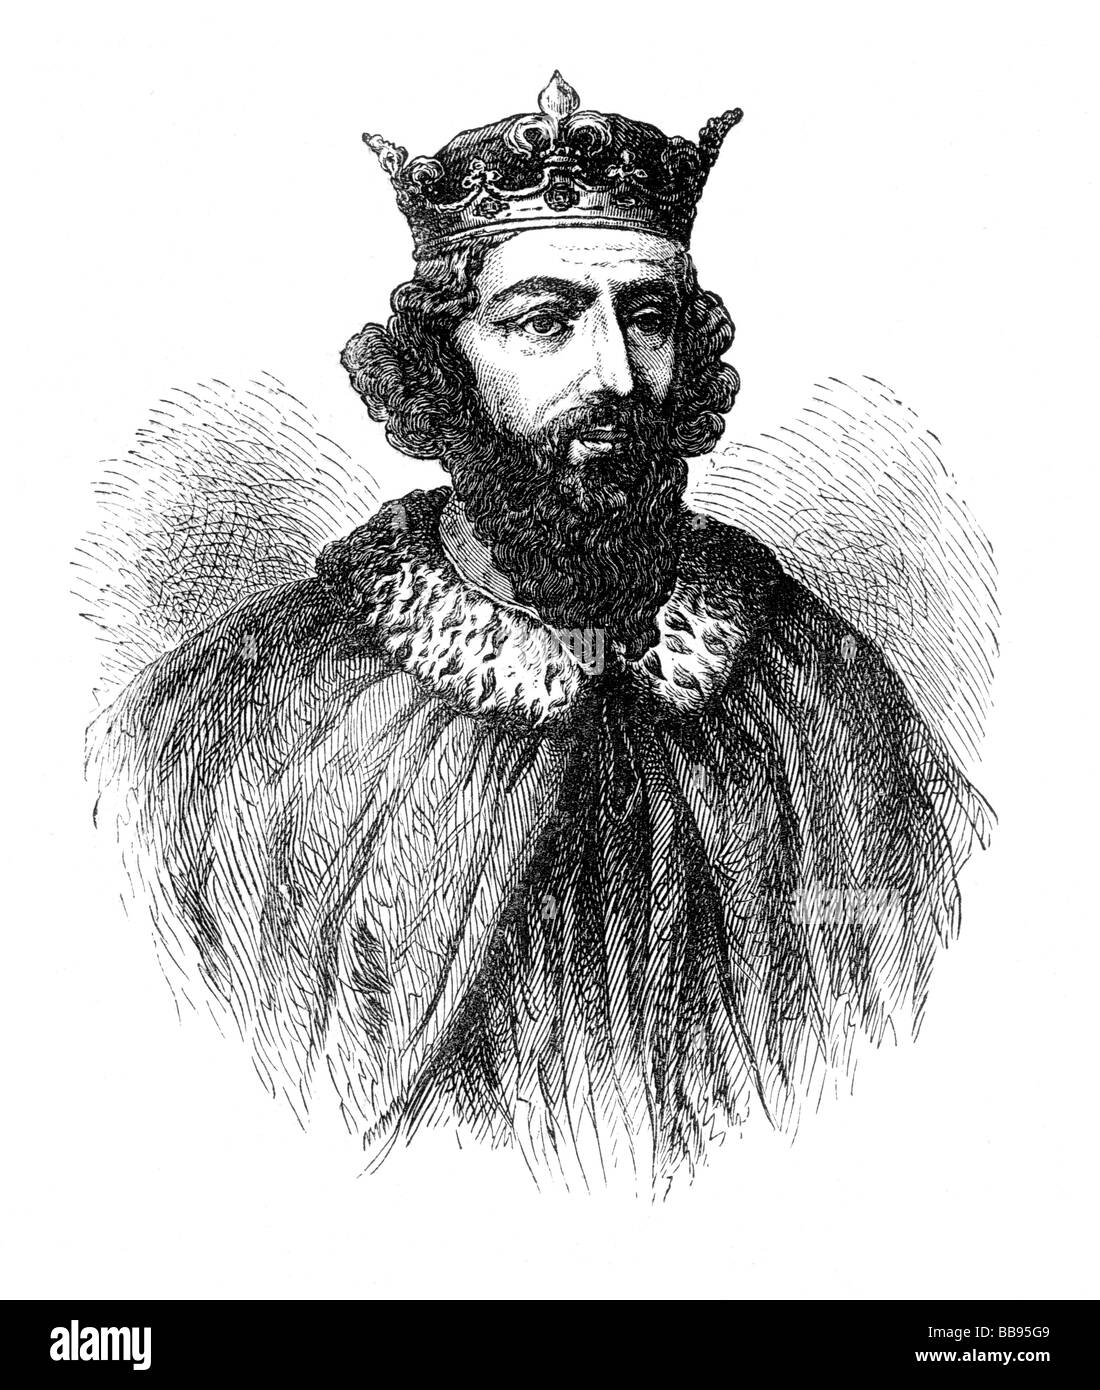 Alfred the Great King of Wessex from 871 to 899 Portrait Stock Photo